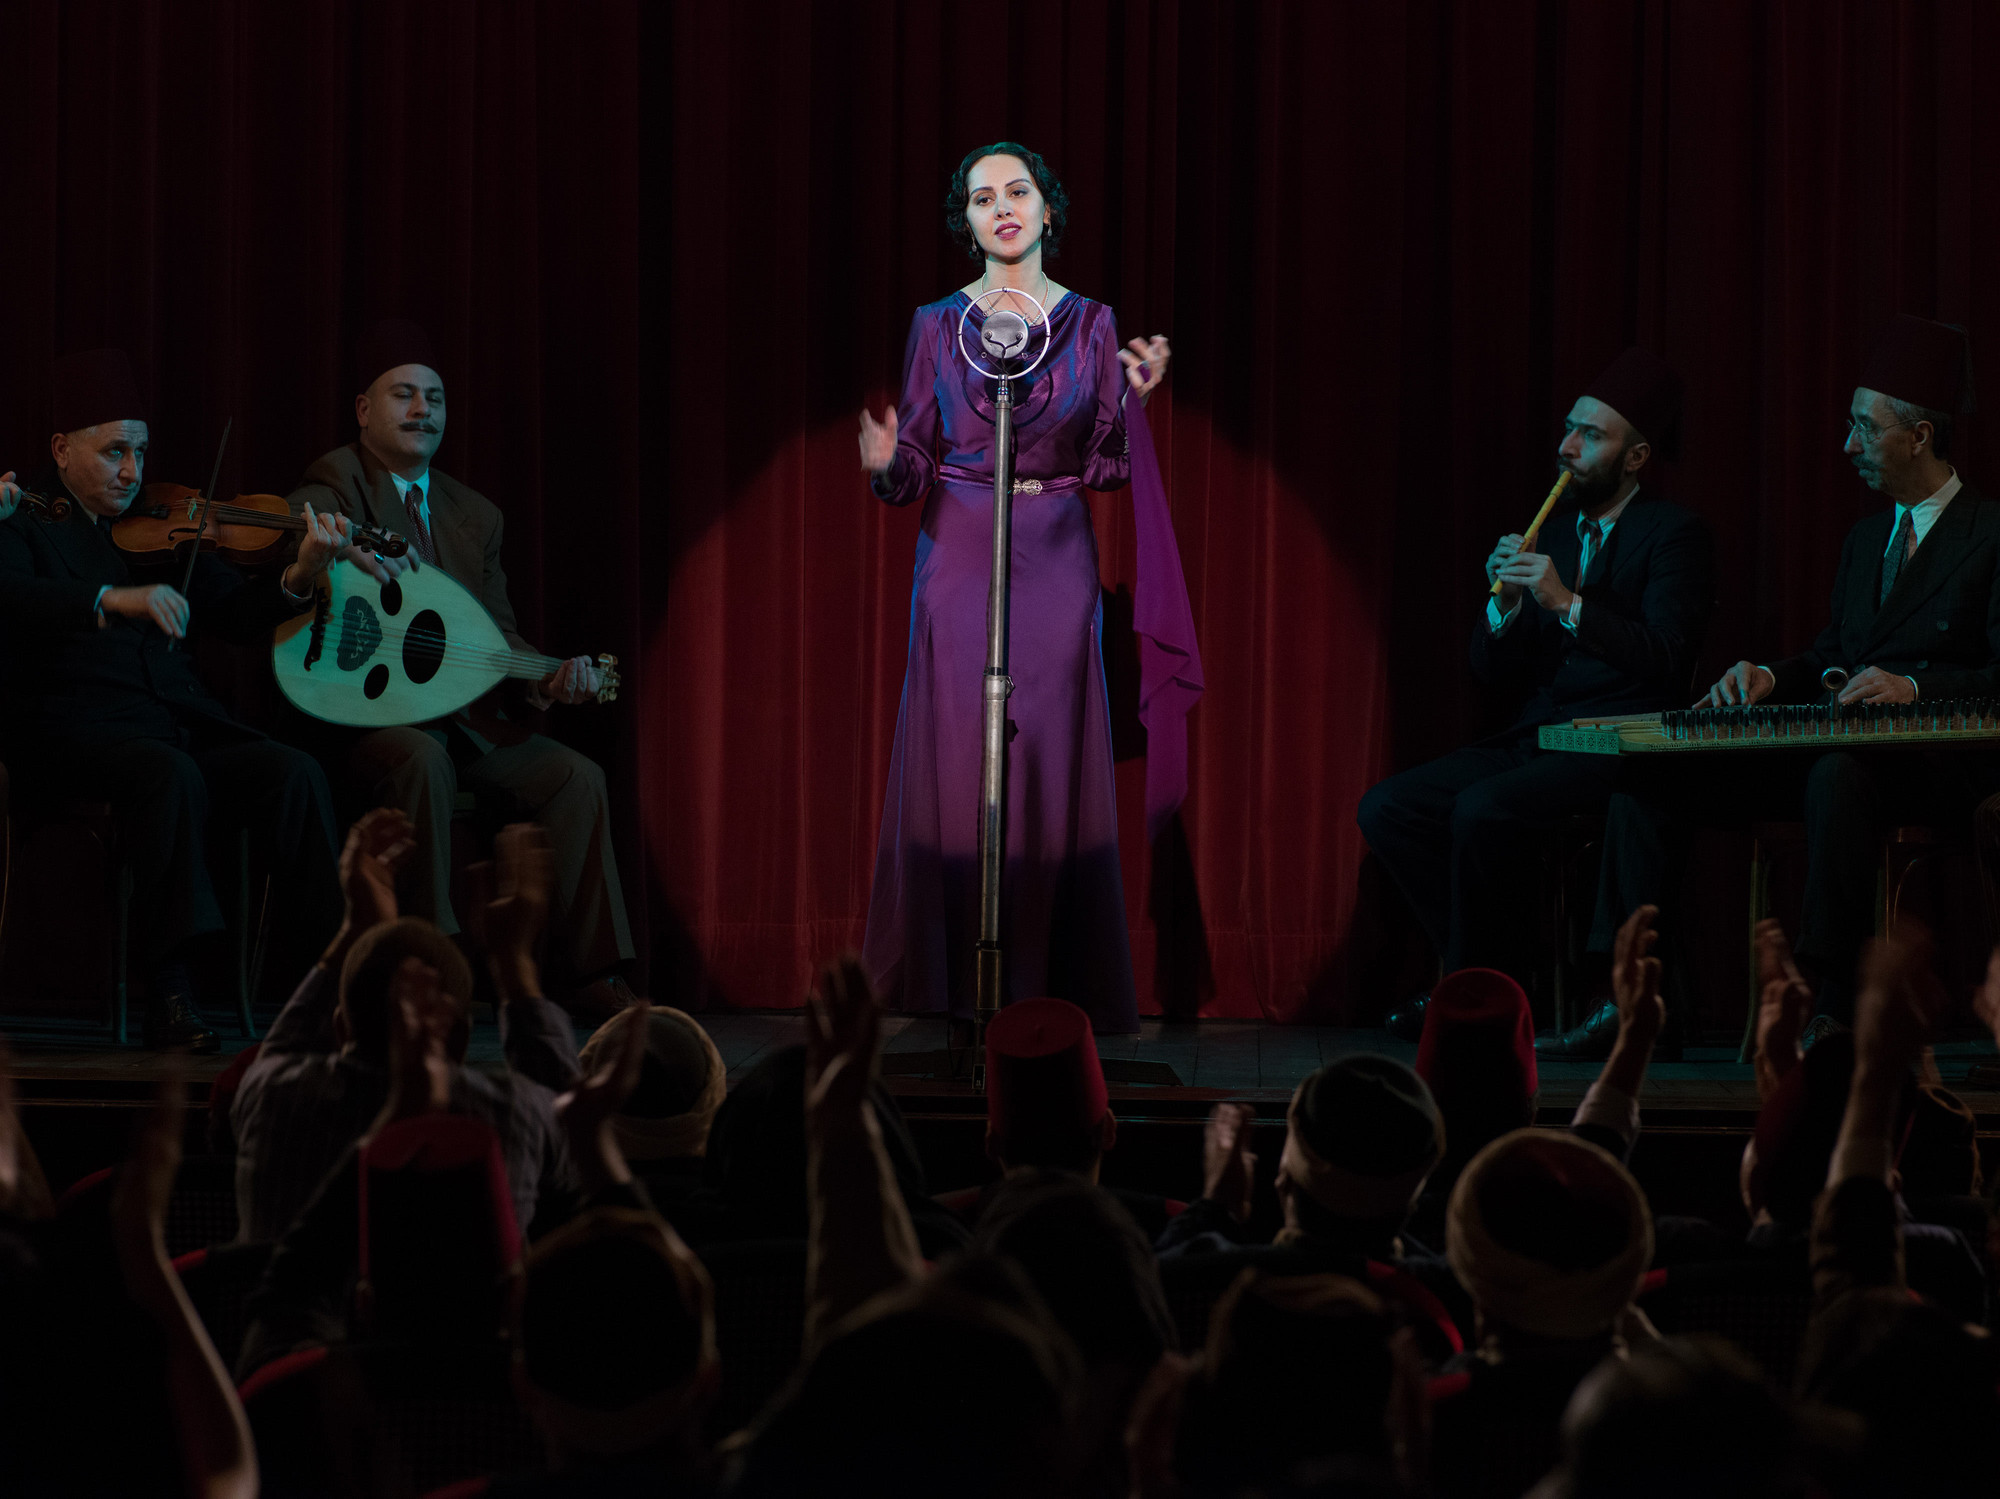 Looking for Oum Kulthum. 2017. Germany/Austria/Italy/Morocco. Directed by Shirin Neshat in Collaboration with Shoja Azari. Courtesy of Razor Film